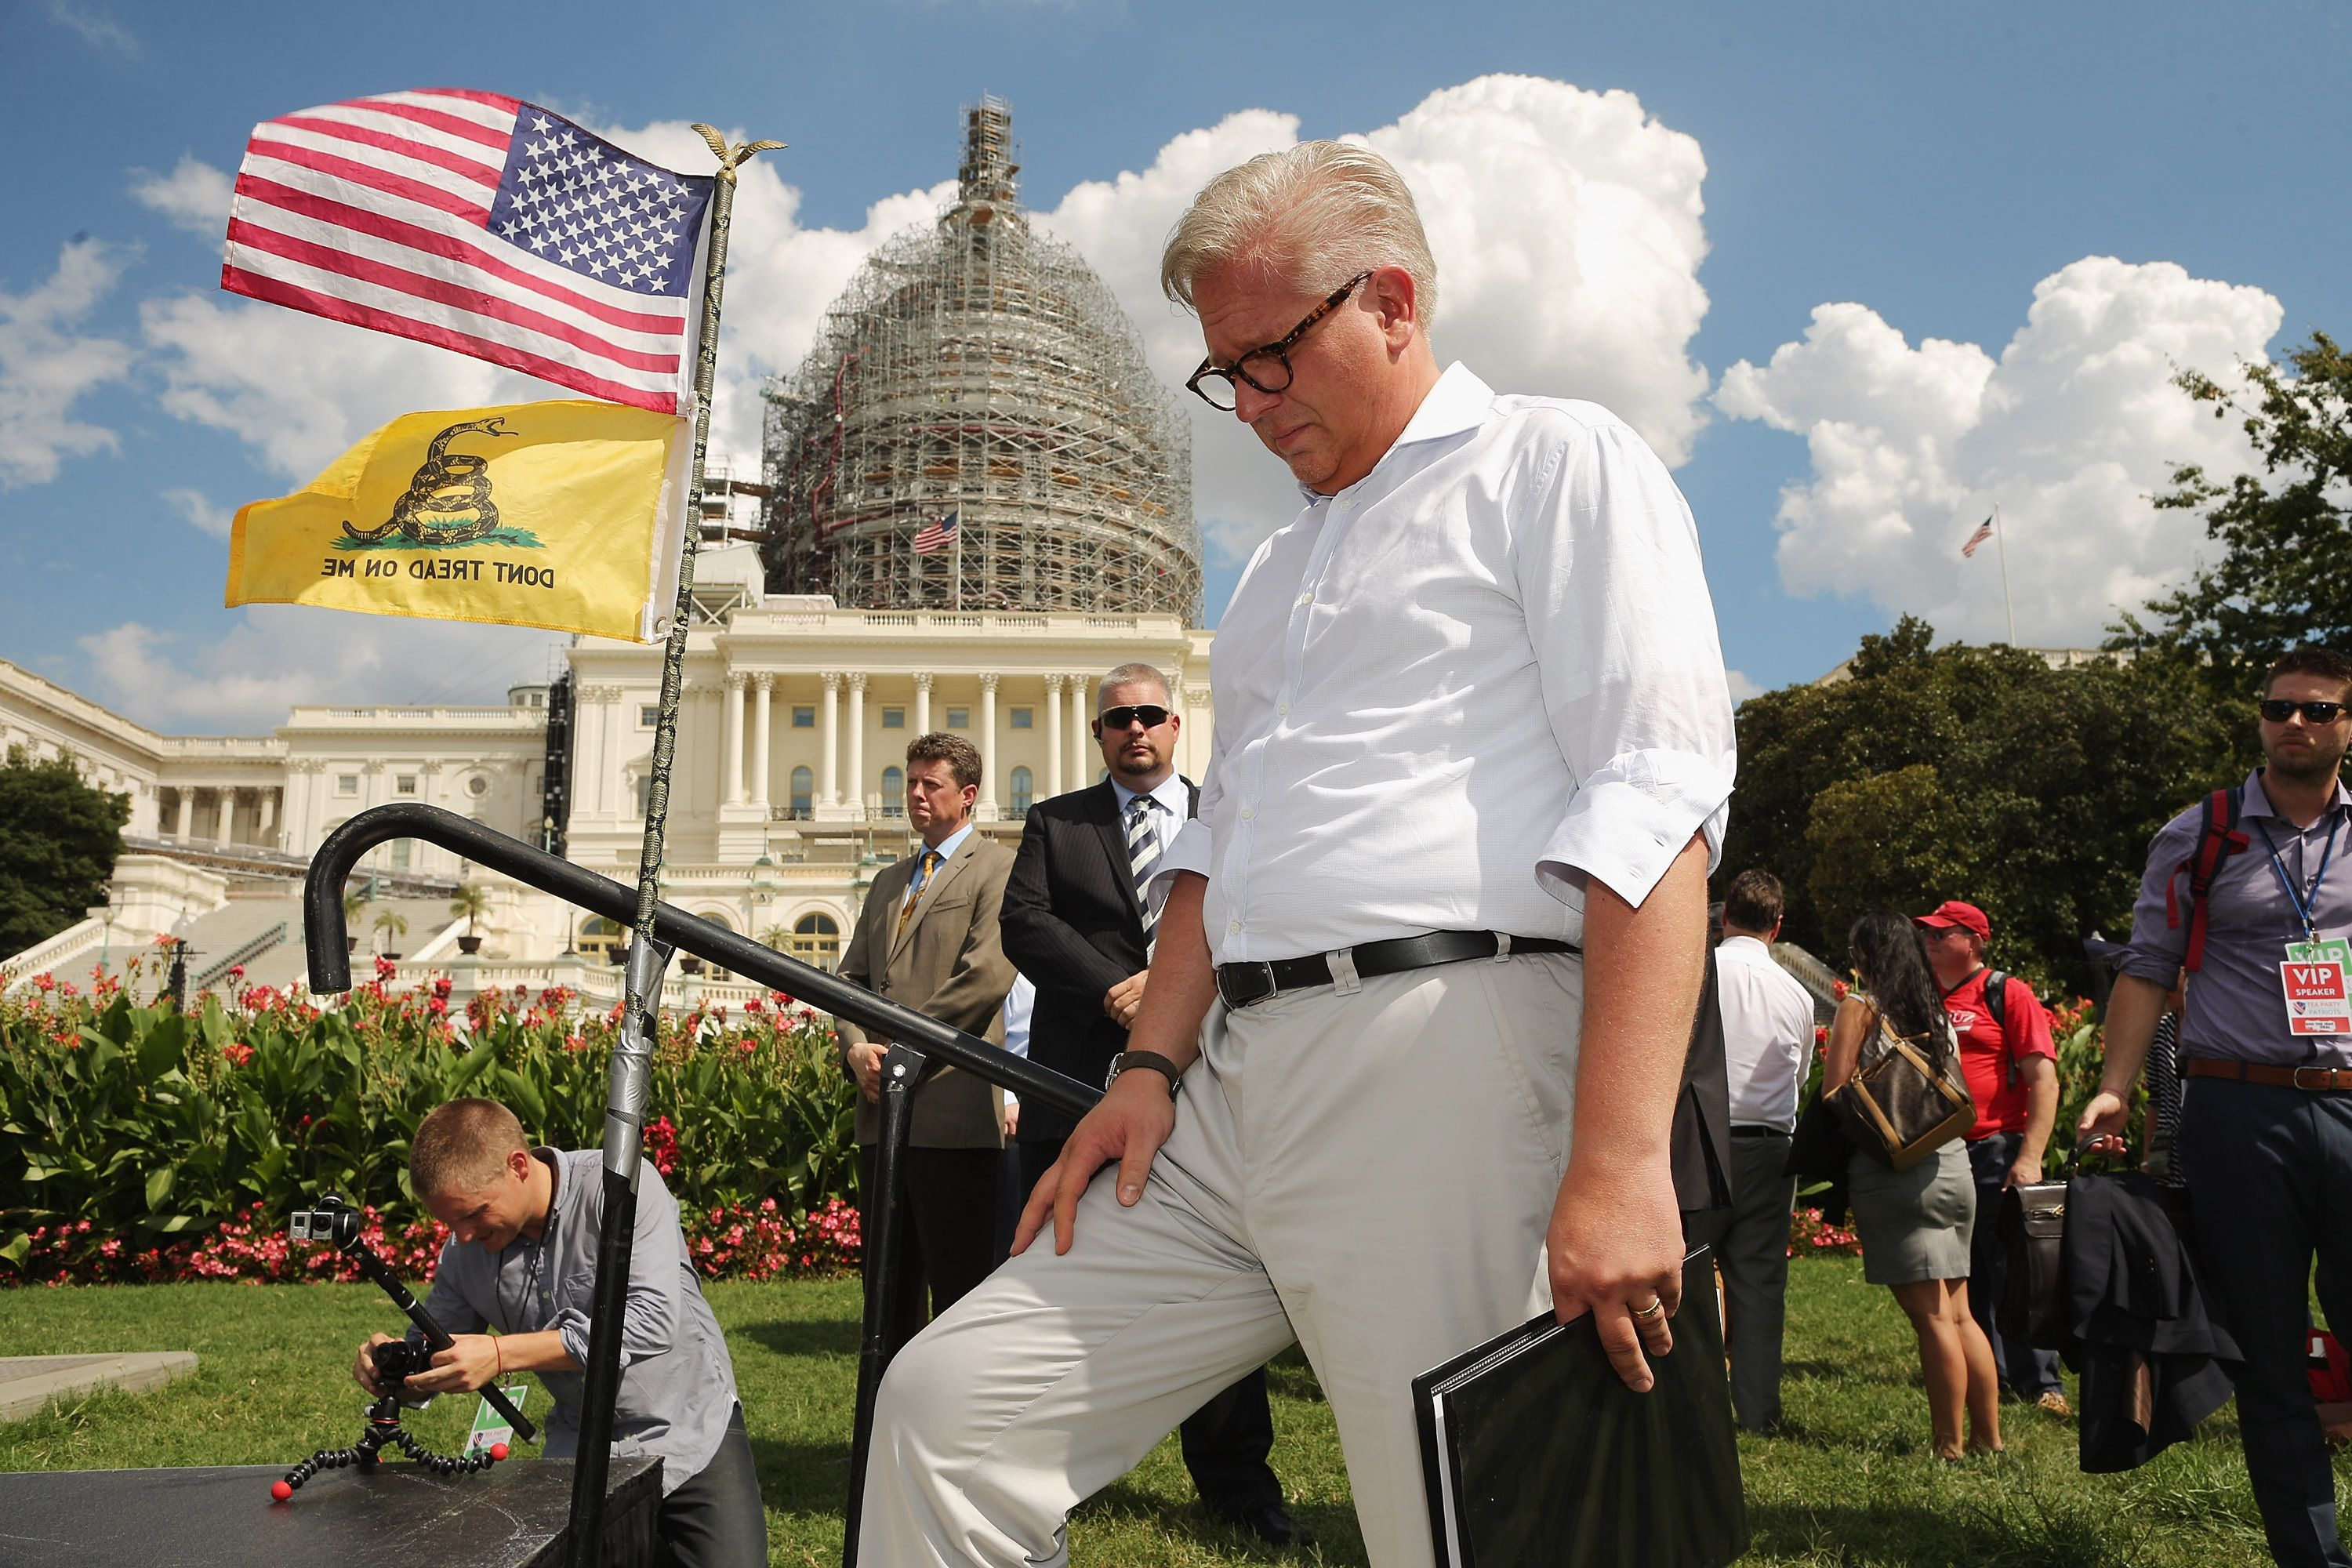 WASHINGTON, DC - SEPTEMBER 09:  Conservative pundit Glenn Beck prepares to take the stage during a rally against the Iran nuclear deal on the West Lawn of the U.S. Capitol September 9, 2015 in Washington, DC. Thousands of people gathered for the rally, organized by the Tea Party Patriots, which featured conservative pundits and politicians.  (Photo by Chip Somodevilla/Getty Images)